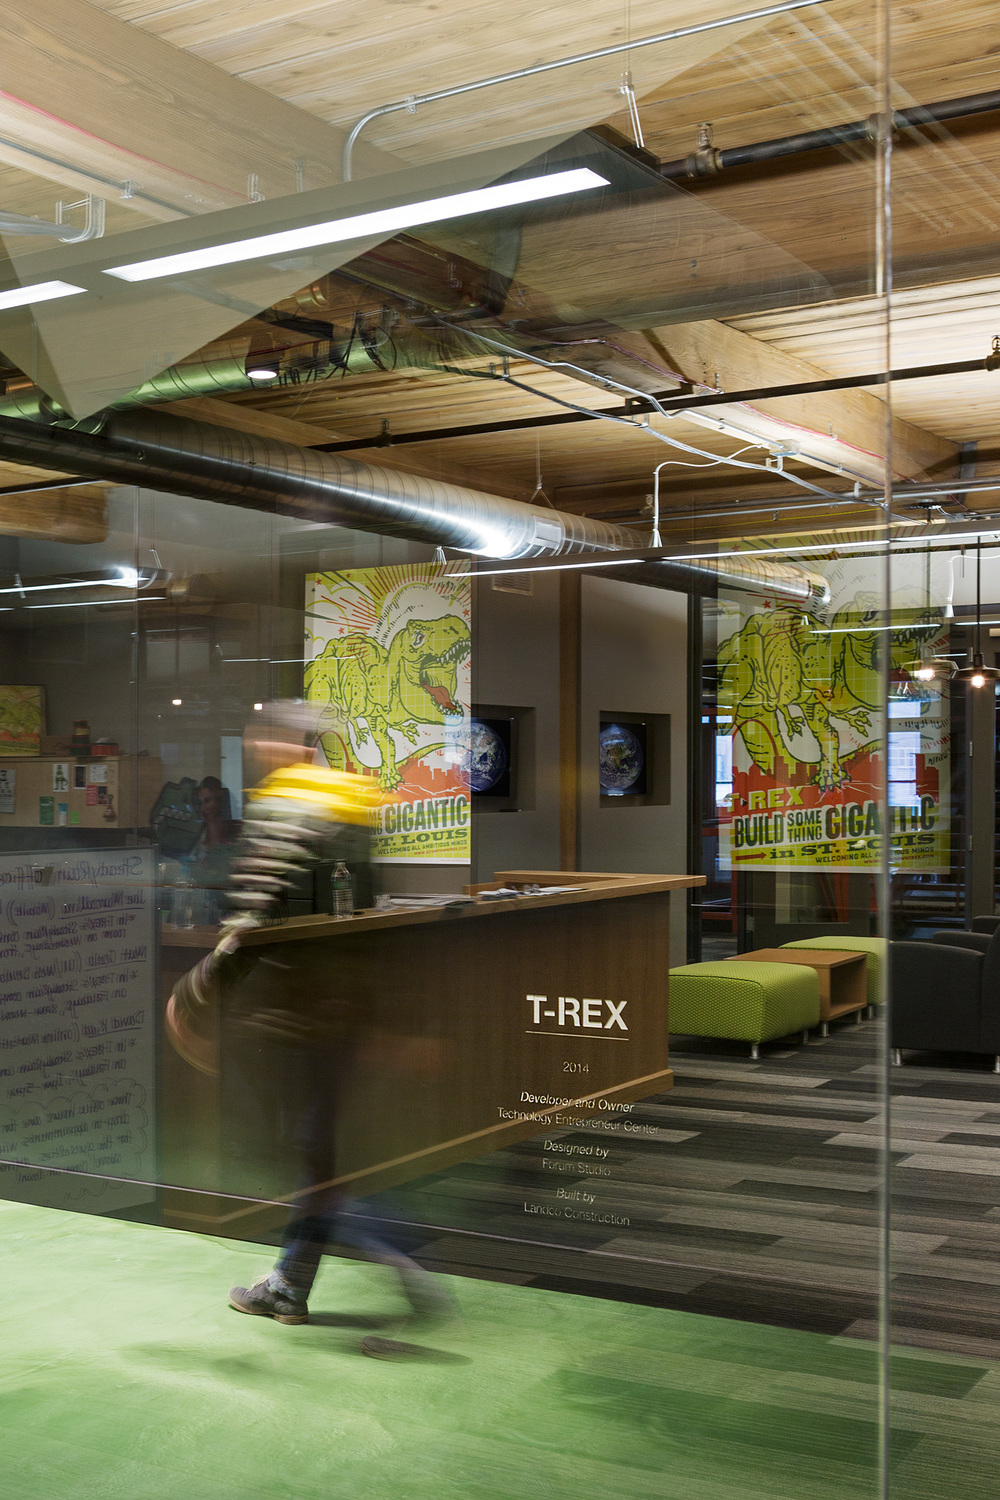 T-Rex Tech Incubator / St. Louis MO / Forum Studio